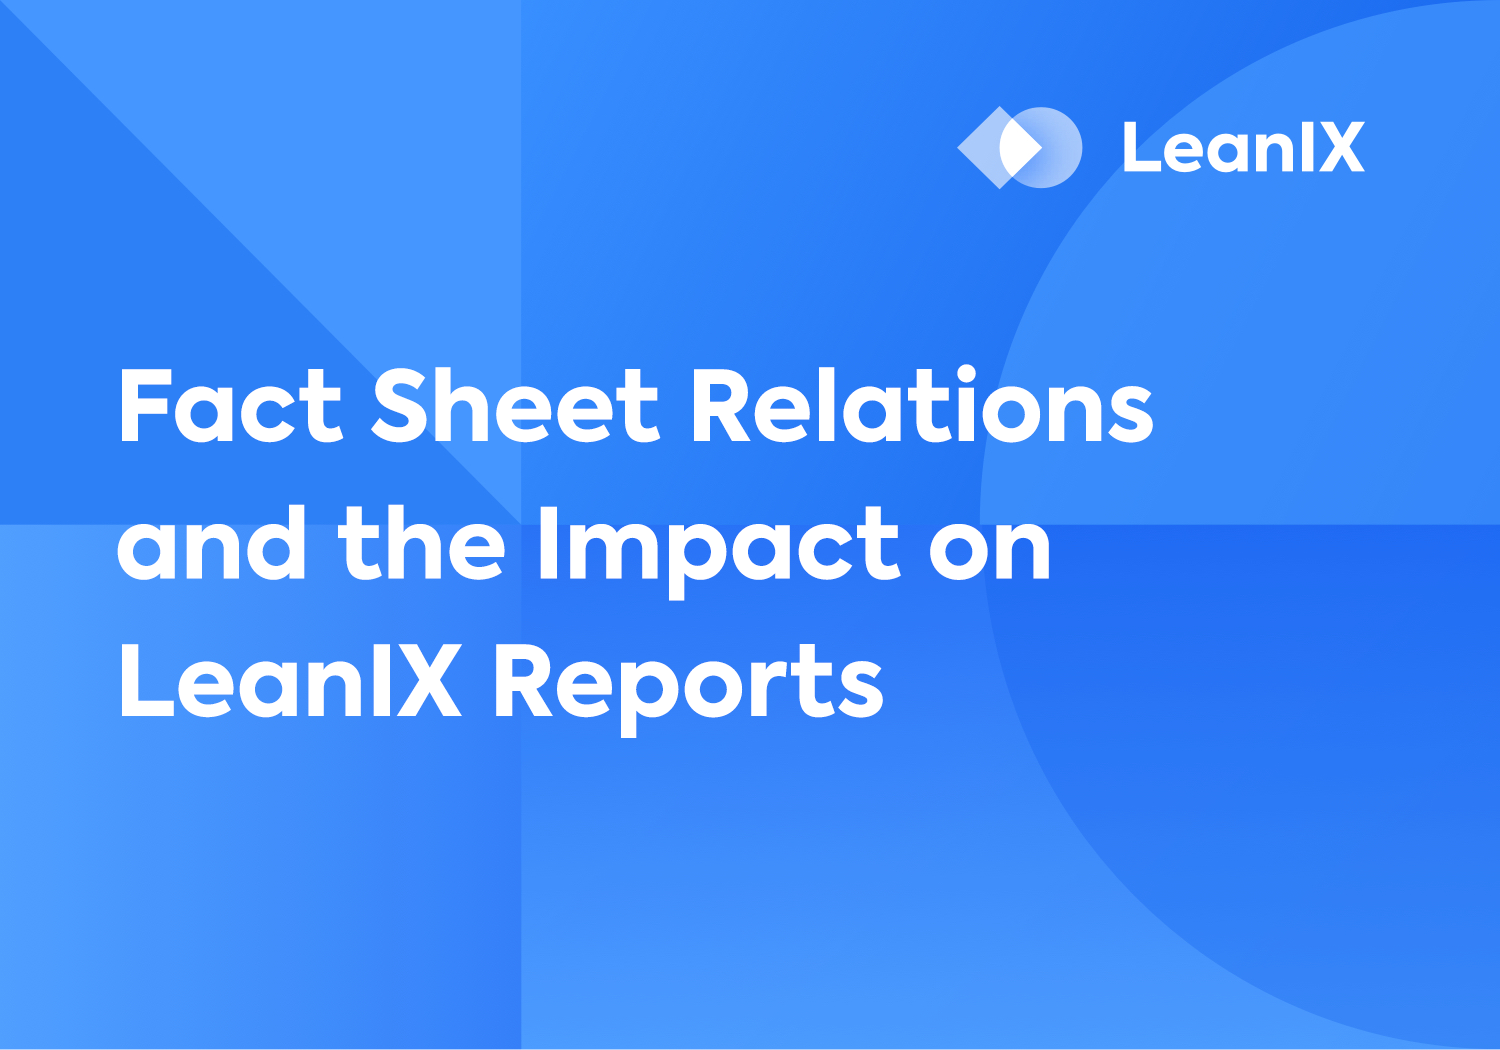 Fact Sheet Relations and the Impact on LeanIX Reports